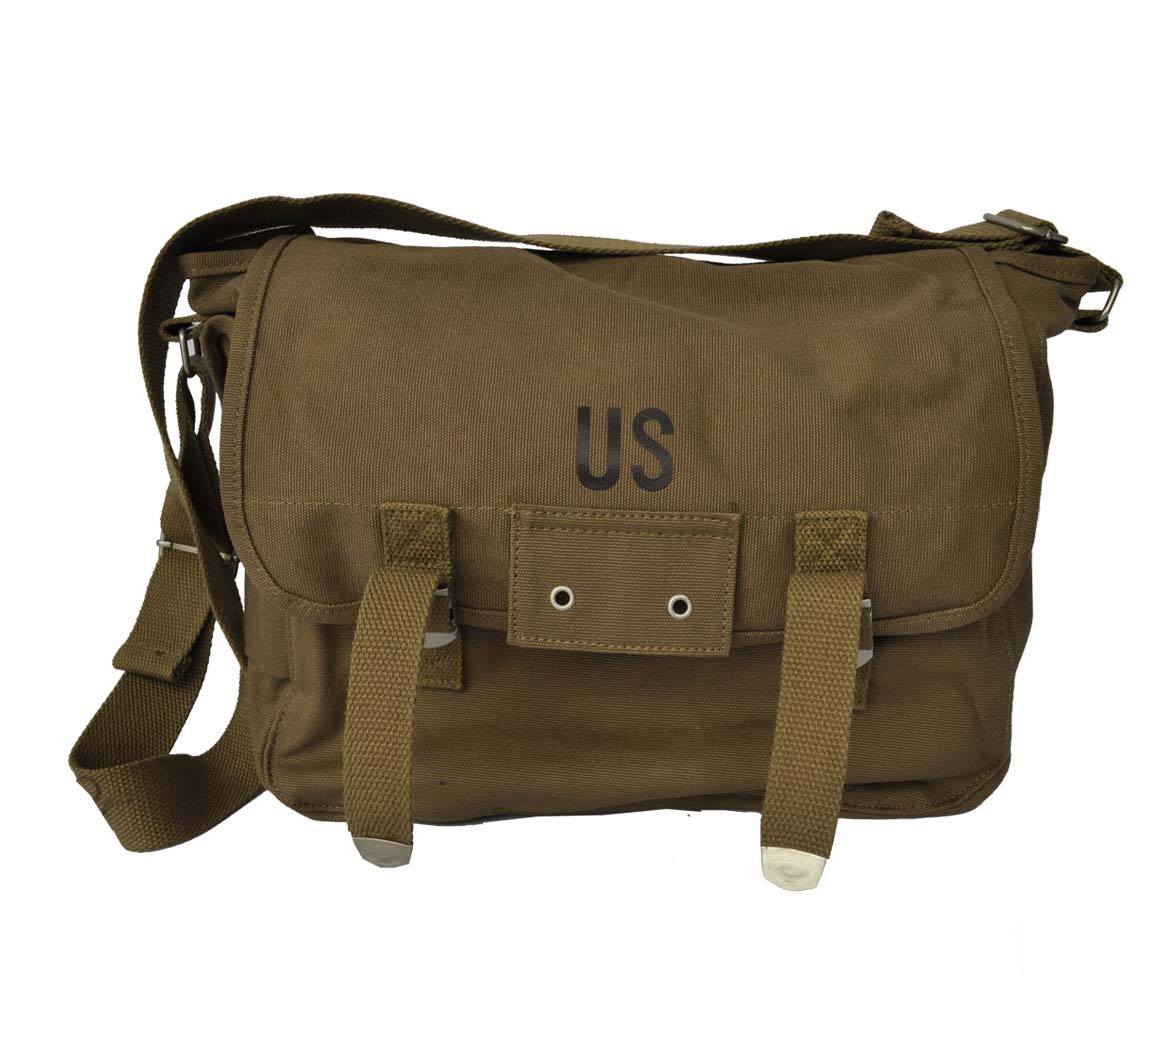 063c1be33e sac us army,Sac musette US Army